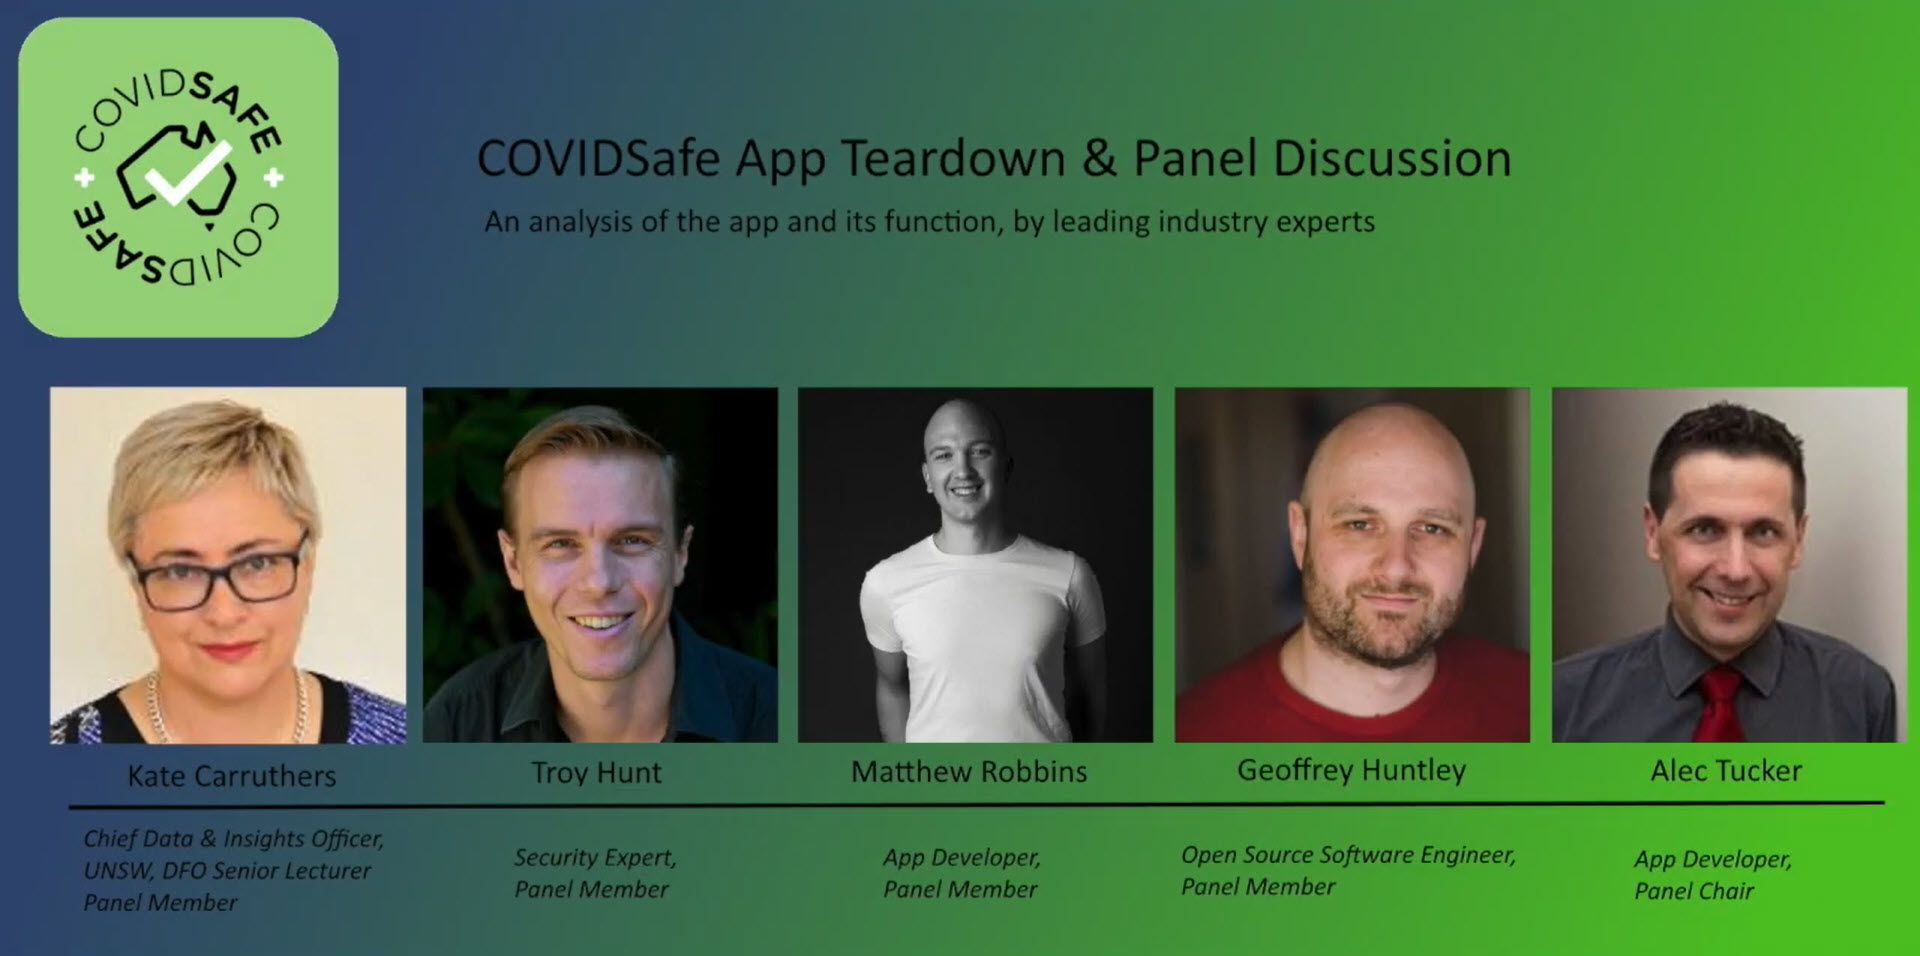 COVIDSafe App Teardown & Panel Discussion